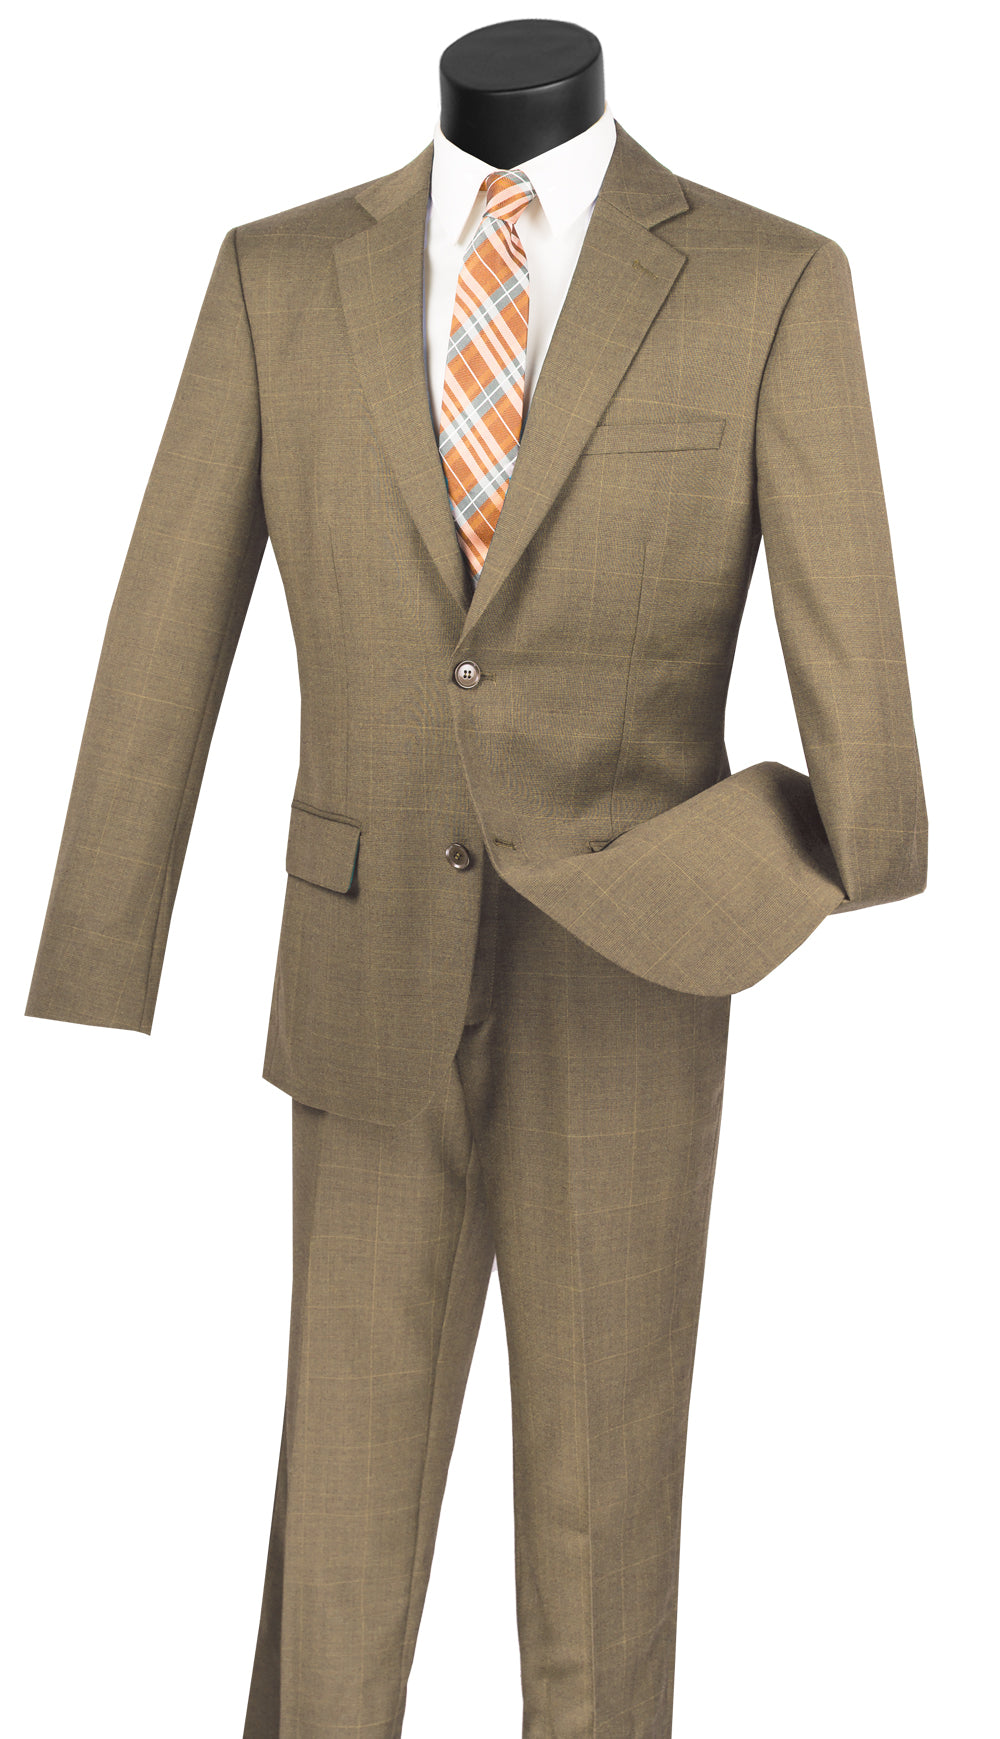 Vinci Men Suit 2WWP1-Taupe - Church Suits For Less